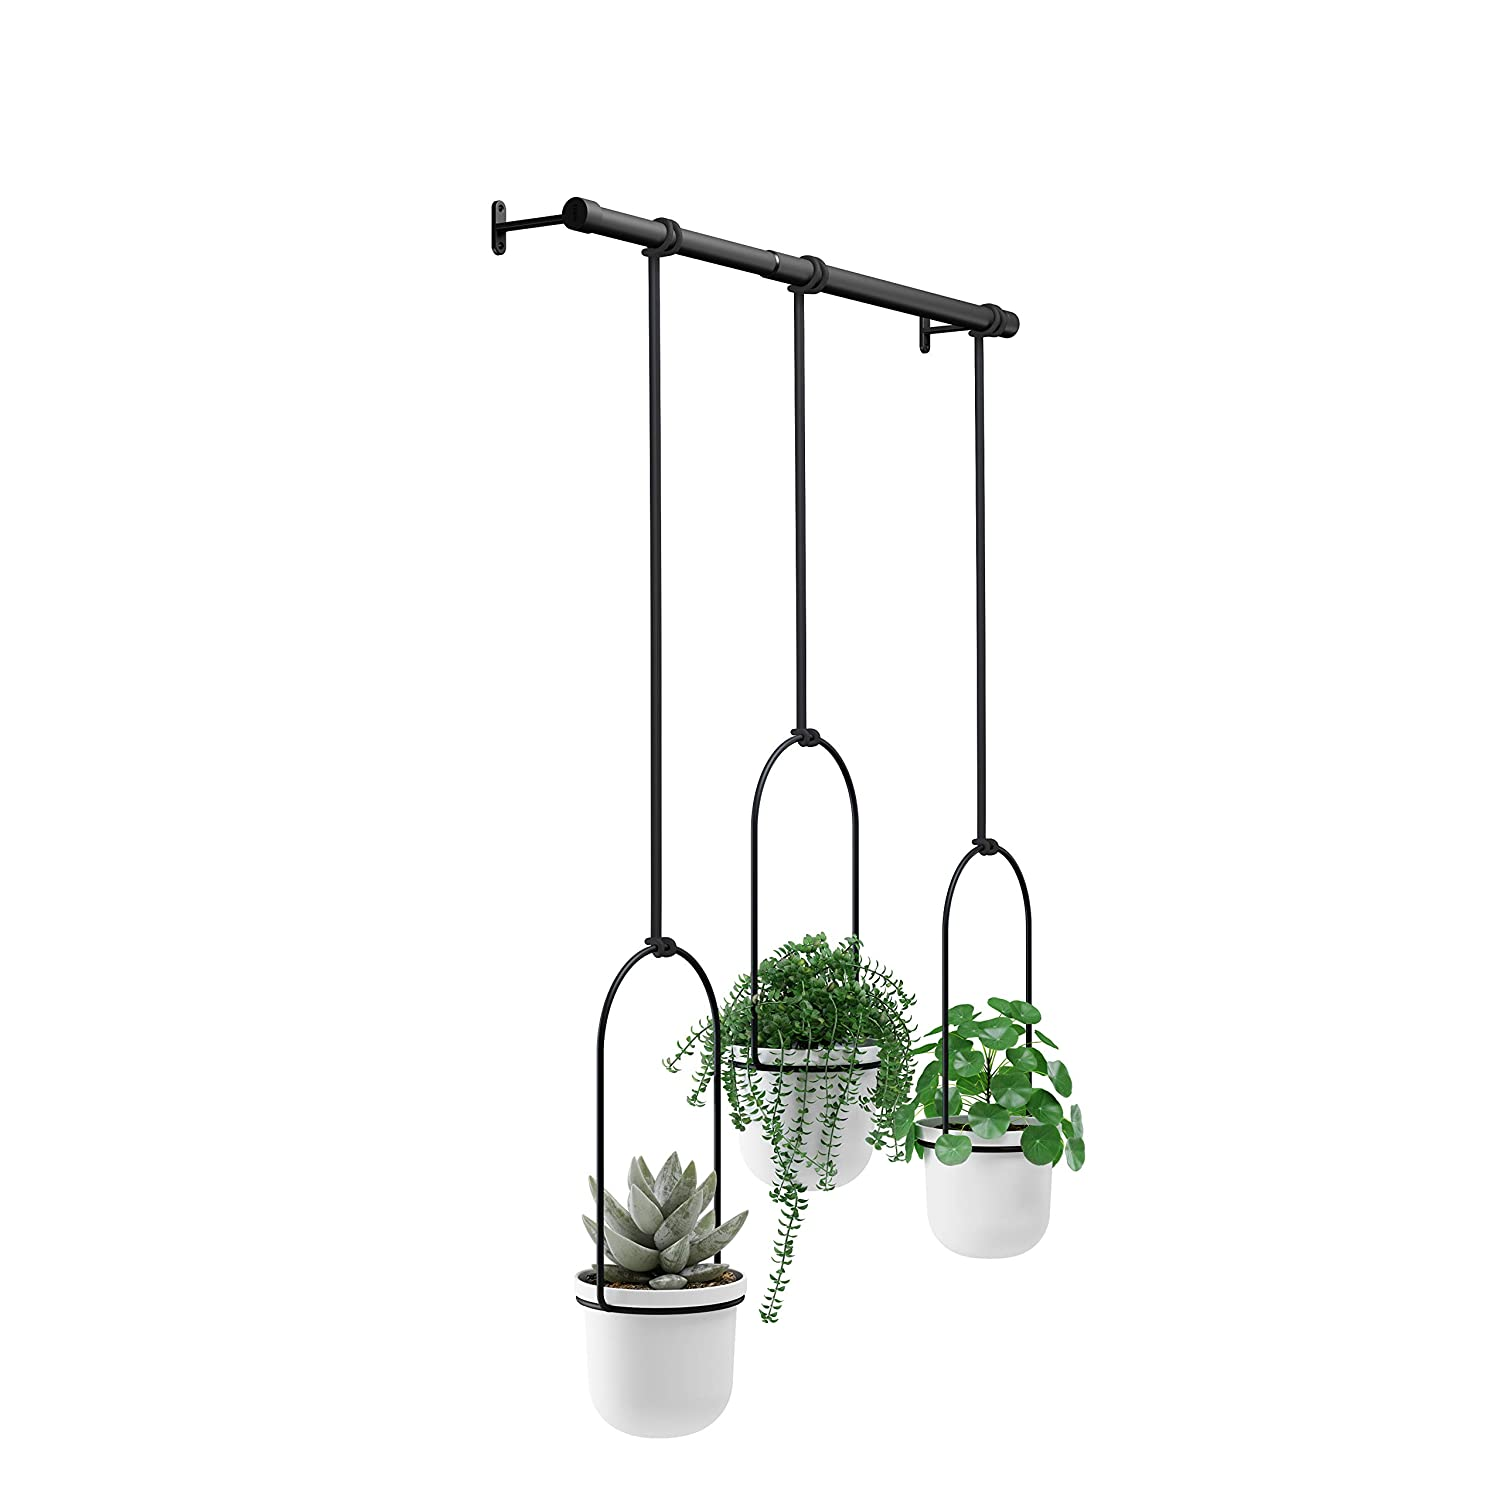 Umbra, White/Black Triflora Hanging Planter for Window, Indoor Herb Garden